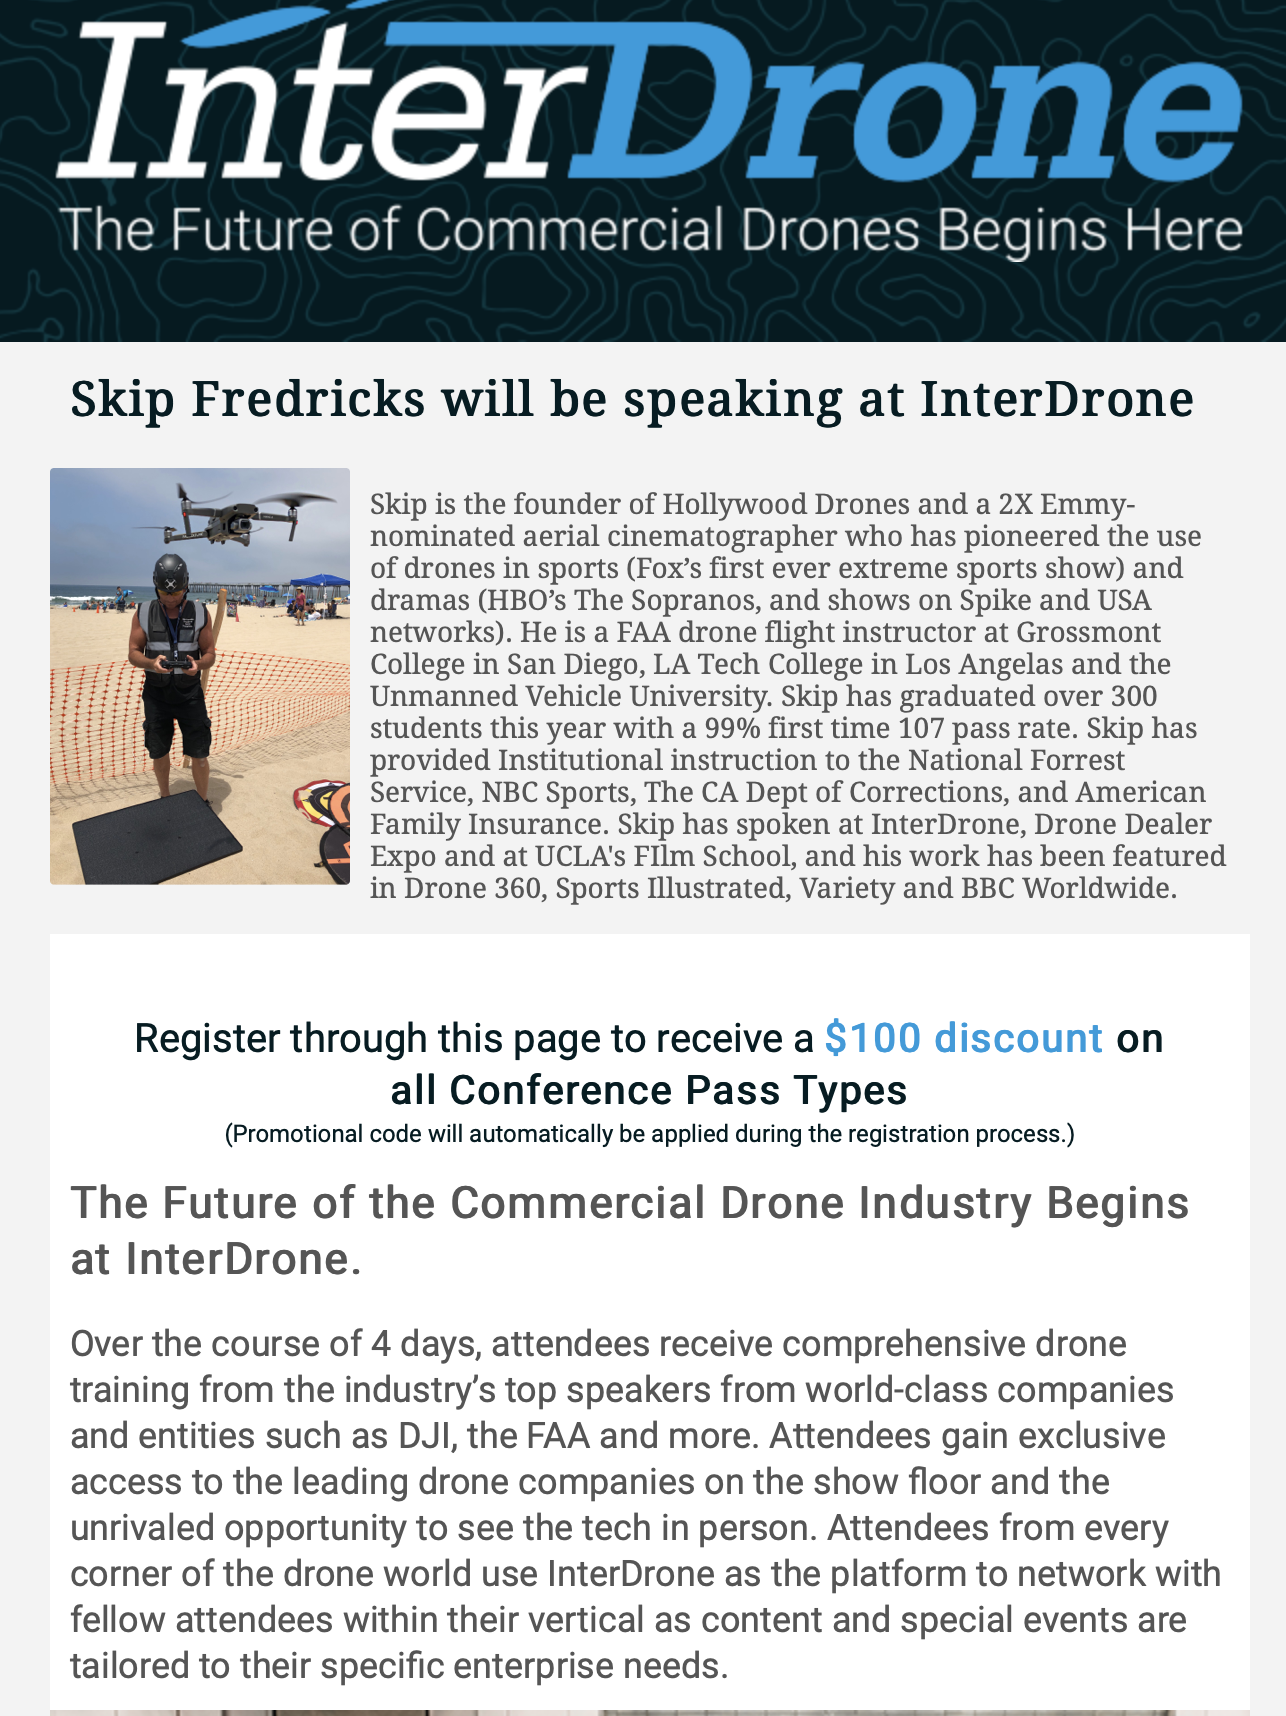 Skip Fredricks Speaking at InterDrone .png